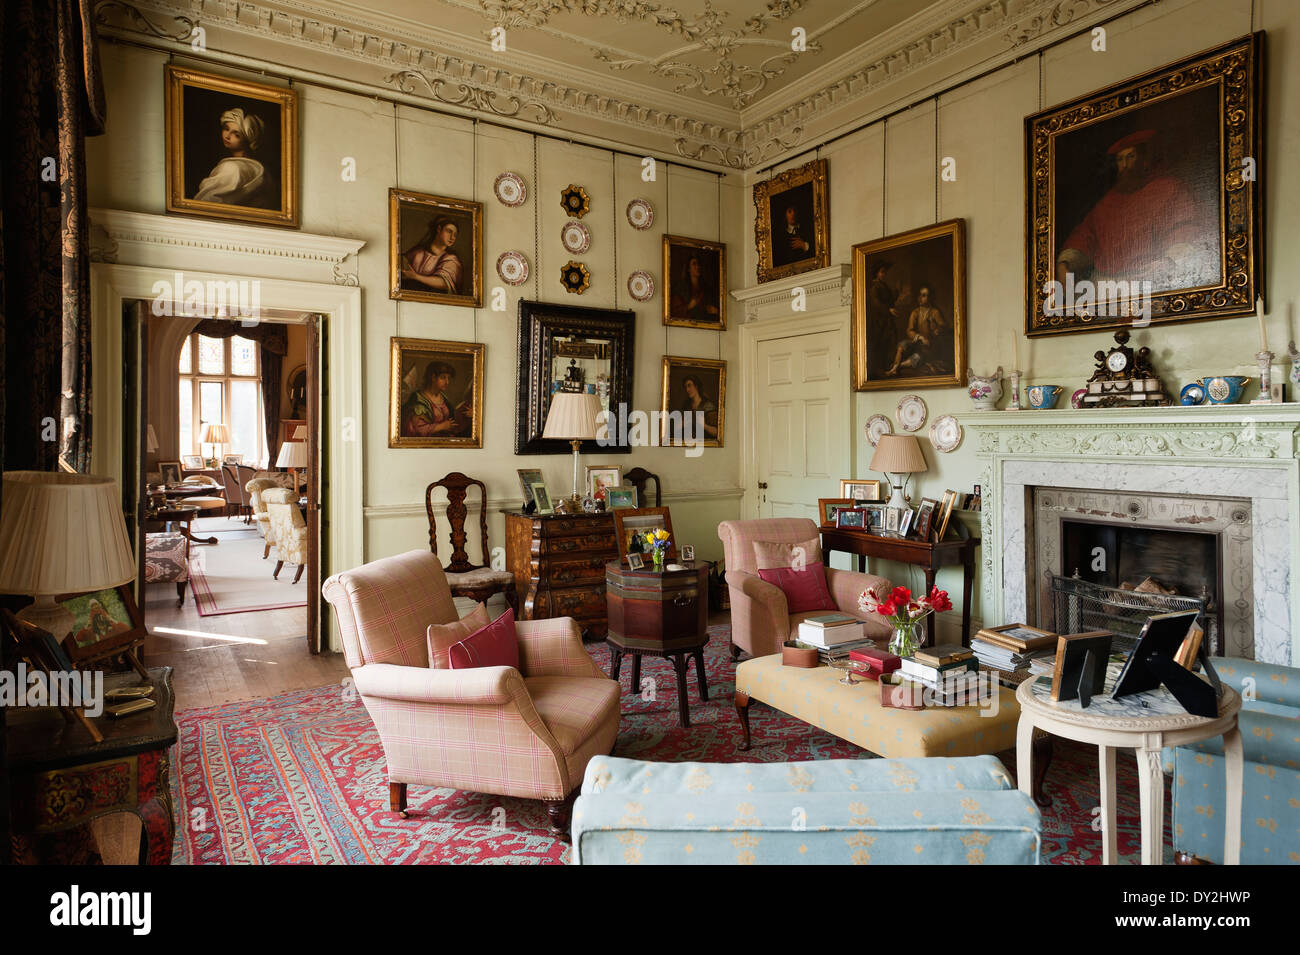 Merveilleux Living Room With Gilt Framed Portraits, Stucco Ceiling And Assorted Antique  Furniture Items   Stock